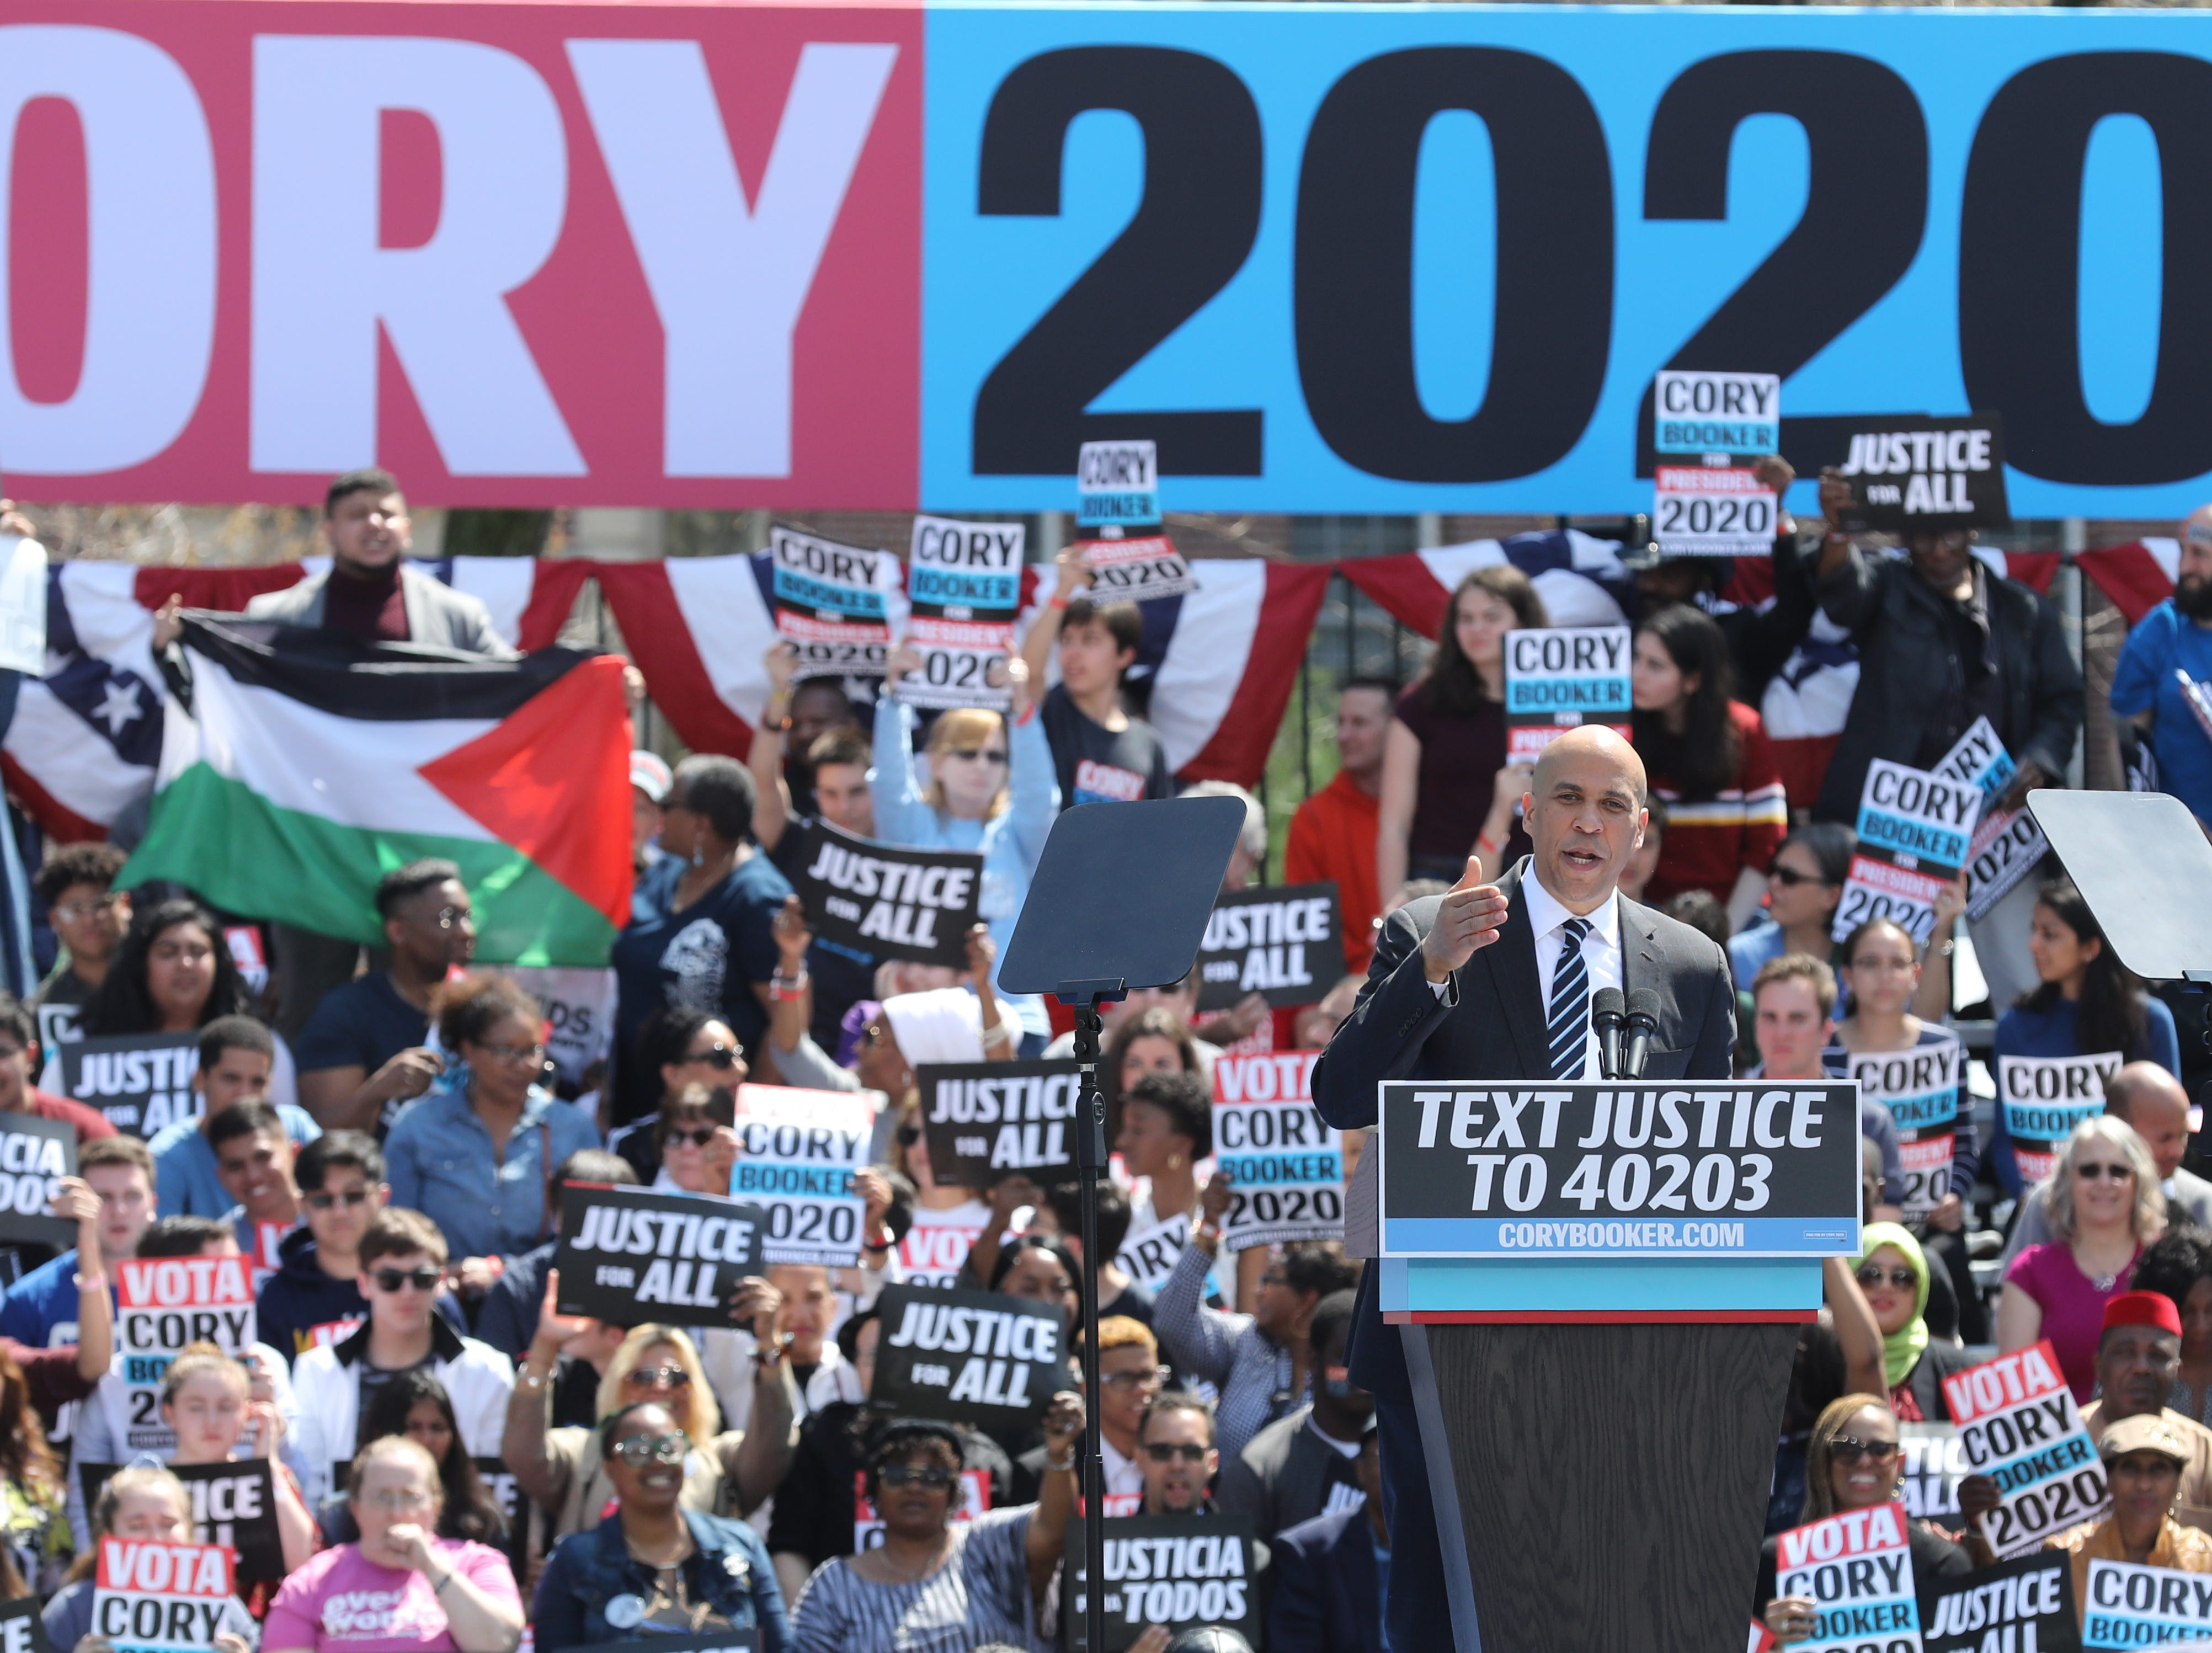 Senator and presidential candidate Cory Booker addresses supporters at a rally to kick off the Cory Booker campaign for president that was held at Military Park in Newark on April 13, 2019.